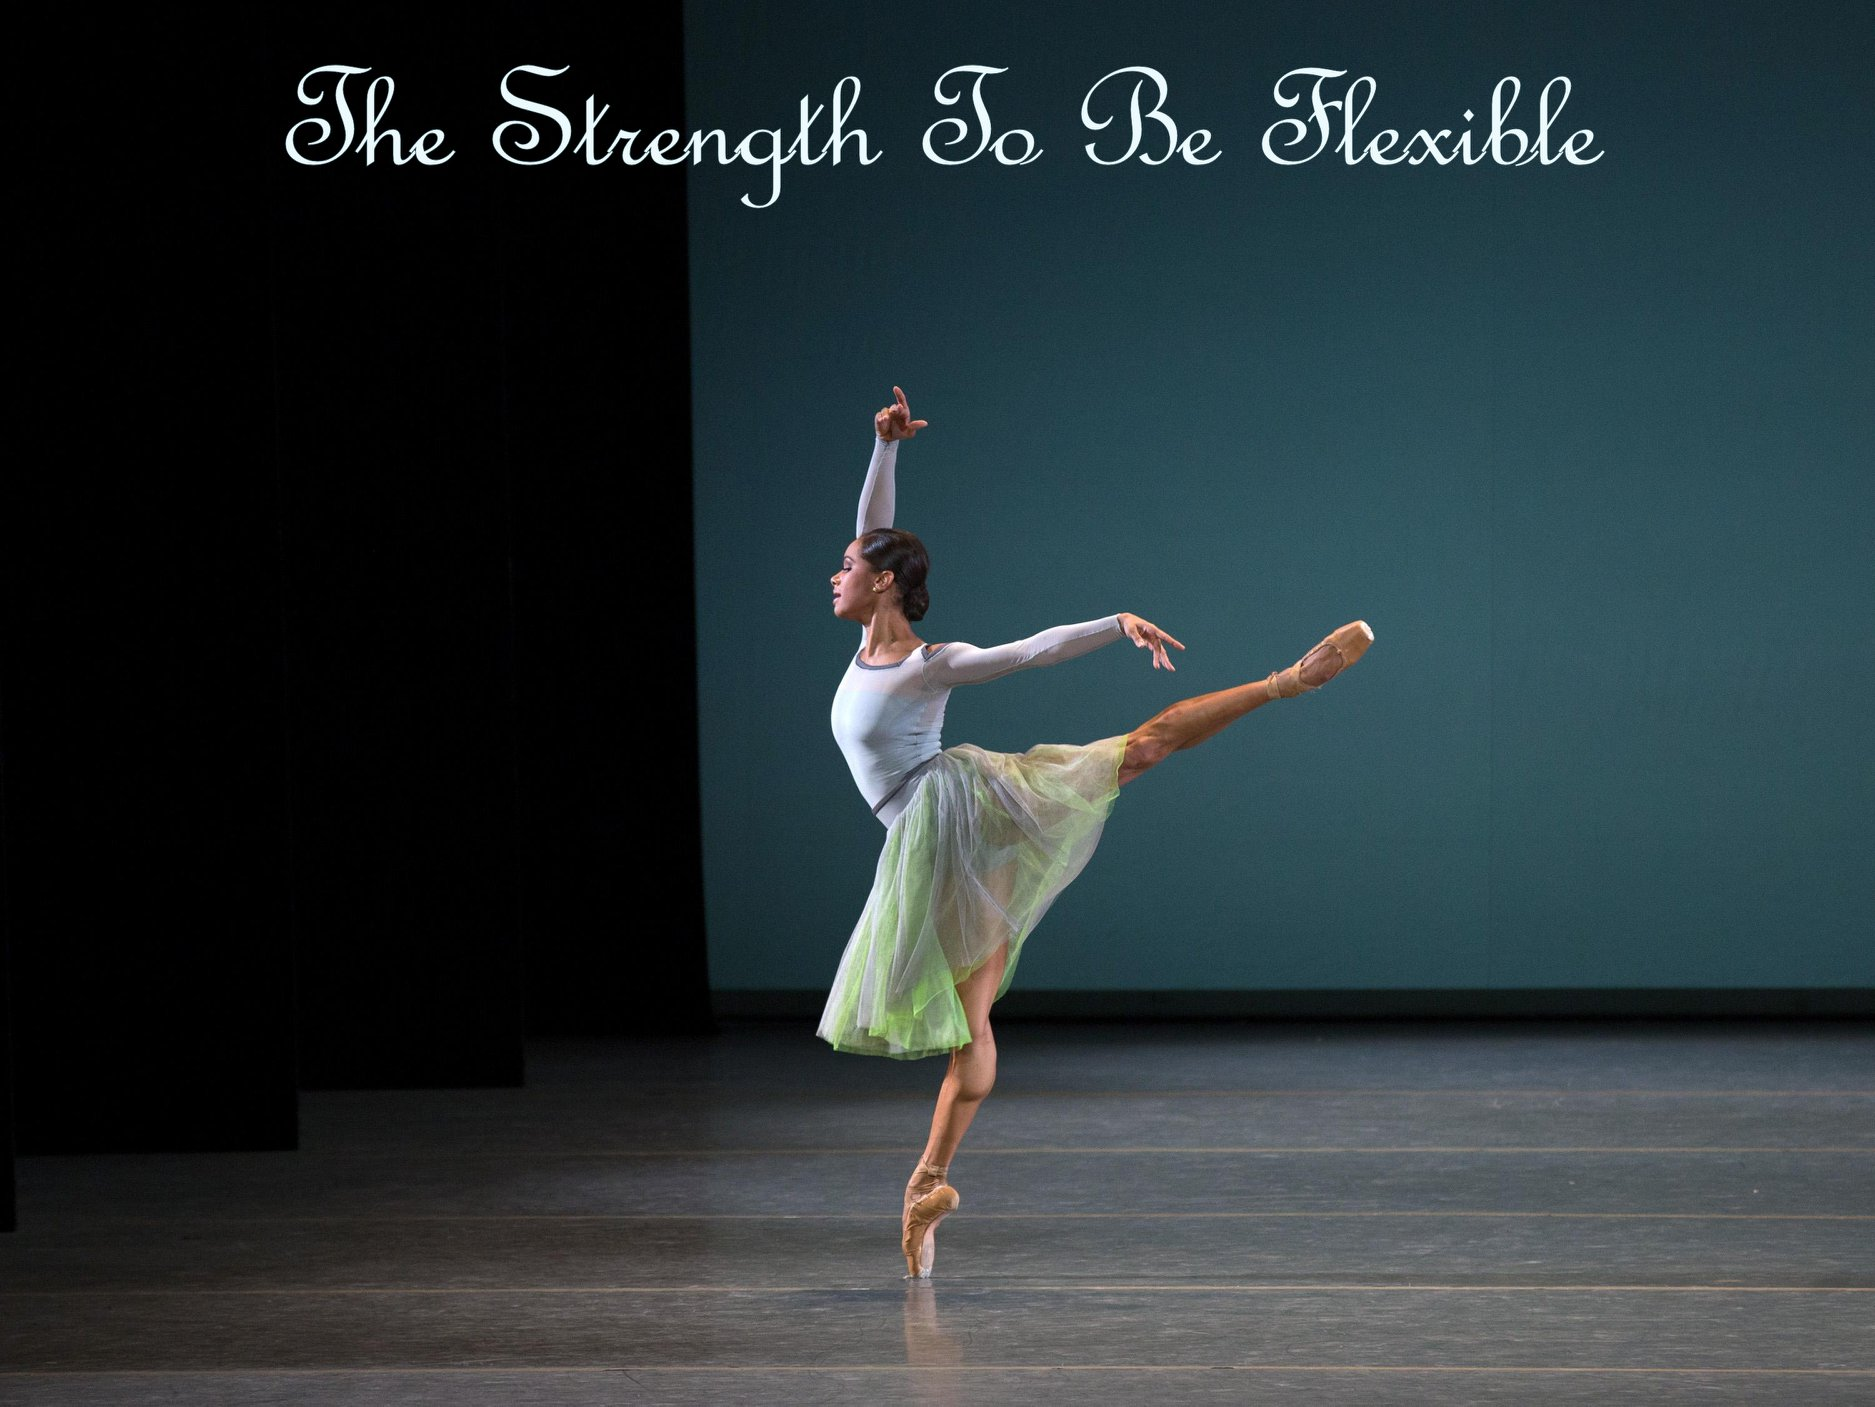 The Strength to be Flexible